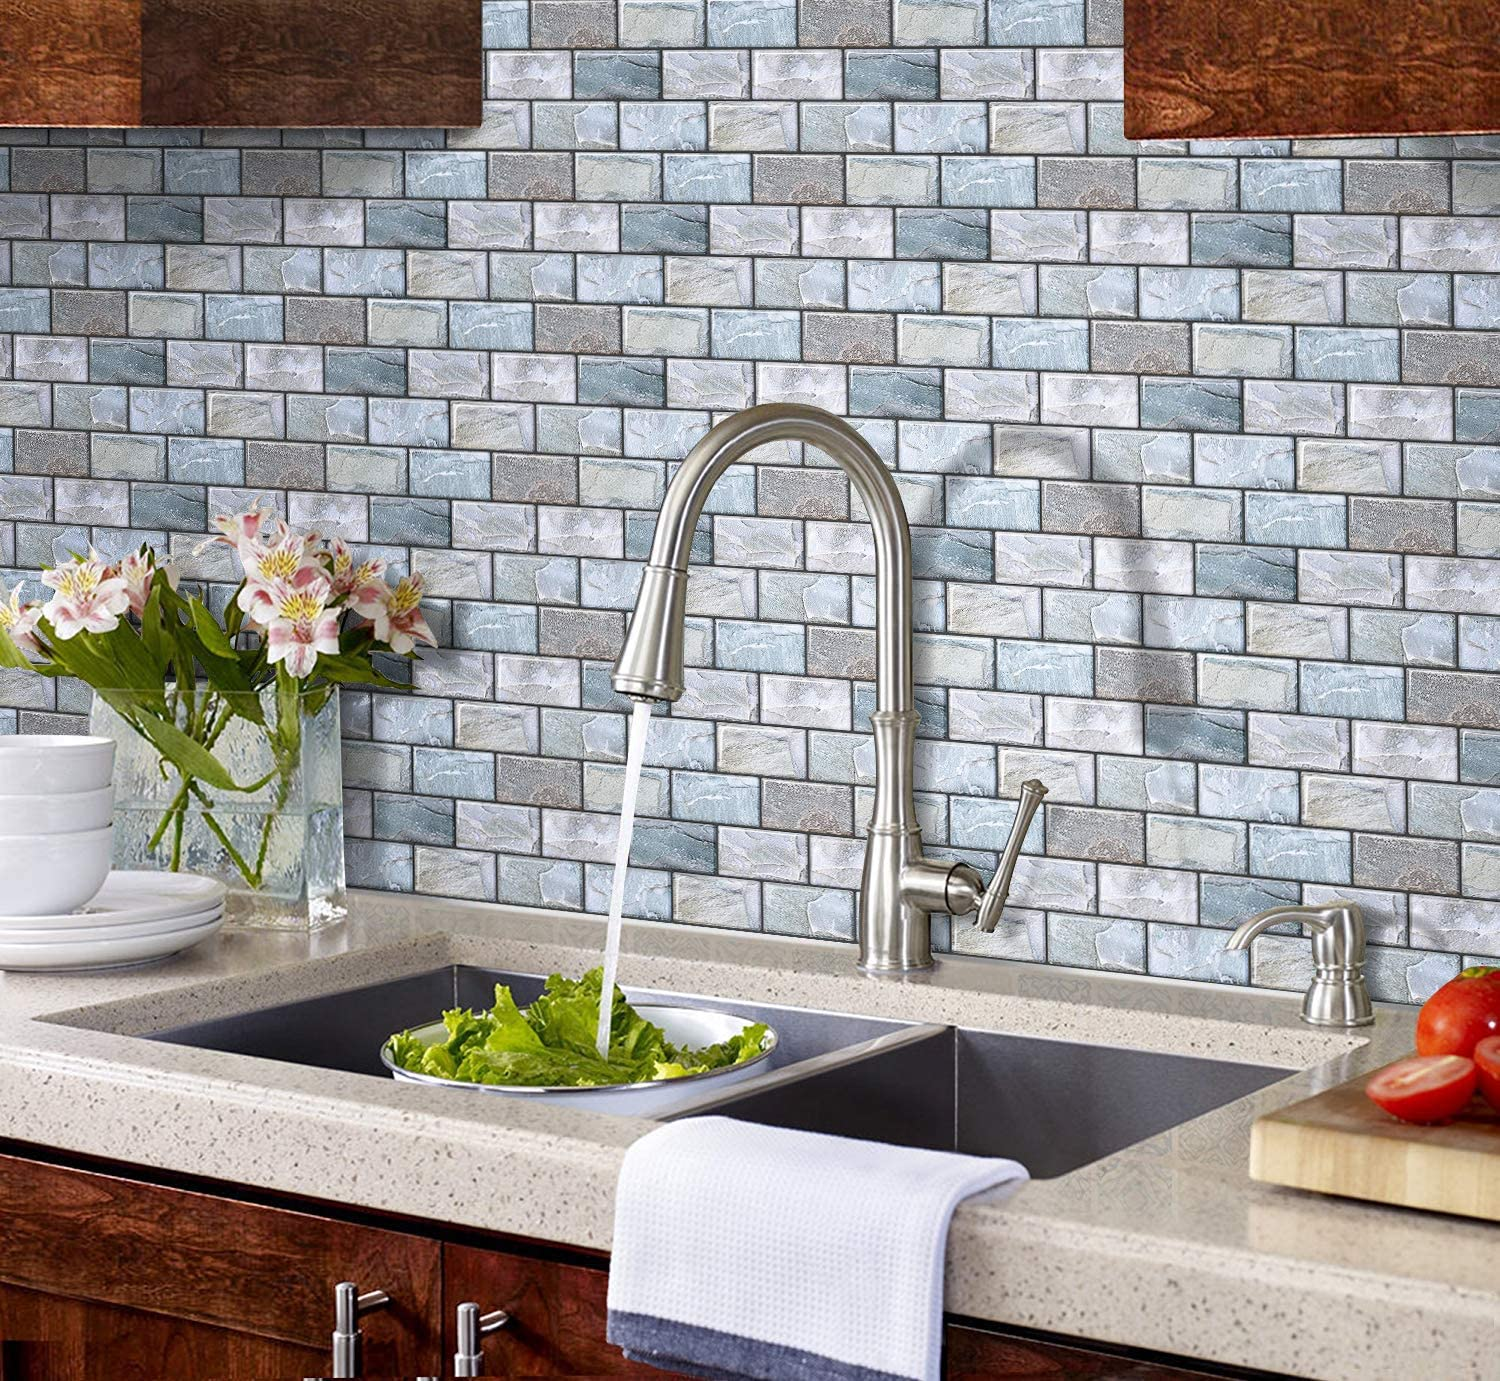 Amazon Com Shingone Peel And Stick Tiles For Kitchen Bathroom Backsplash Self Adhesive 3d Brick Wall Tile Stickers Removable Subway Tiles Sticker For Home Decor 10 X10 6 4 Pcs Arts Crafts Sewing